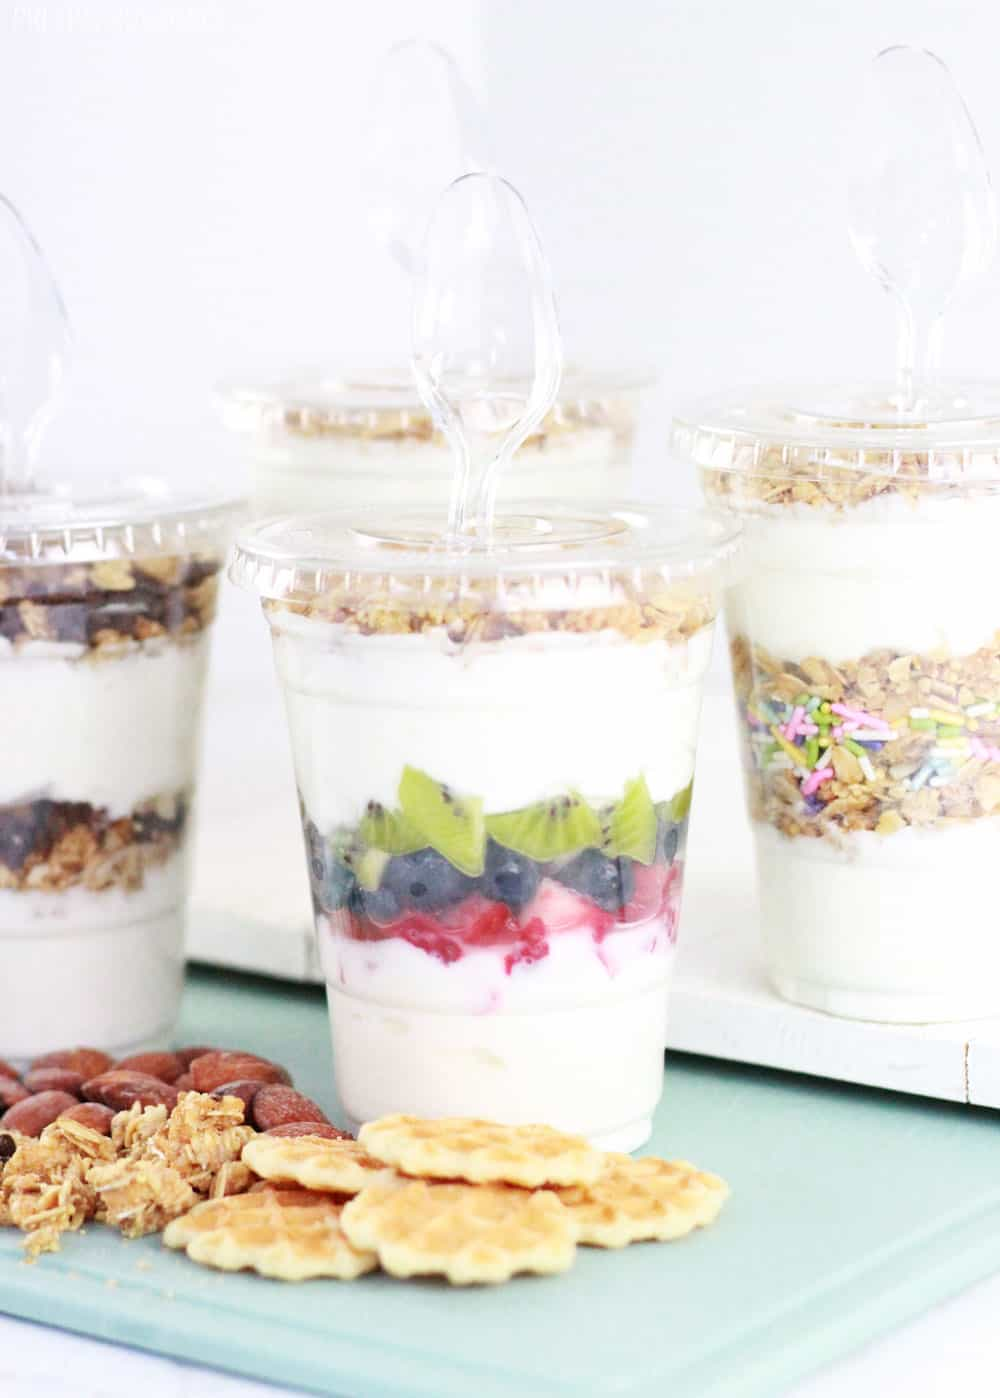 Yogurt parfaits to go.